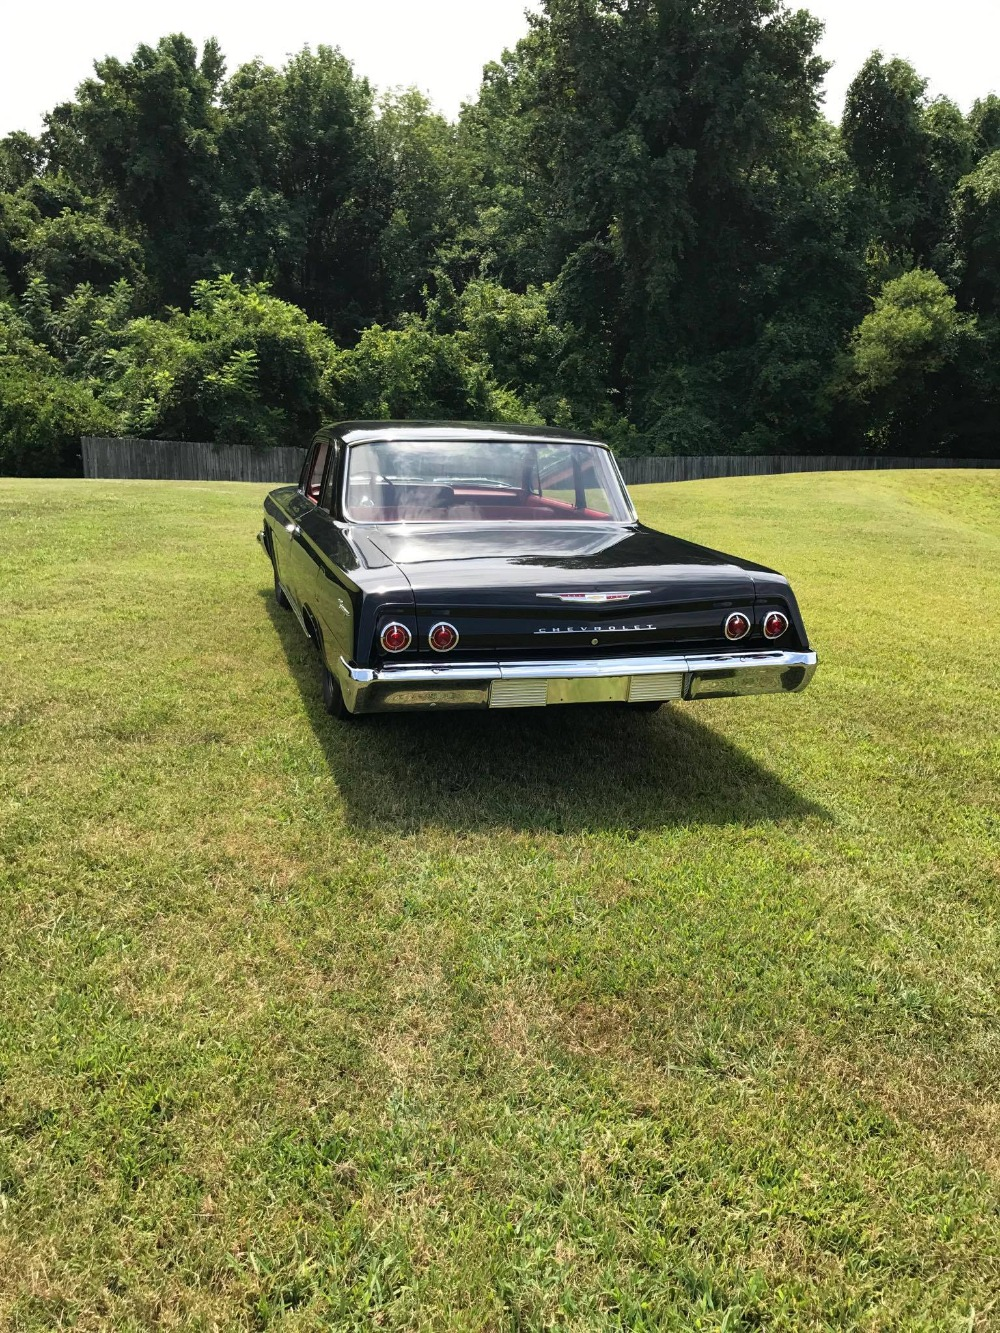 Used 1962 Chevrolet Biscayne -RESTORED FRAME OFF-409-4 SPEED-DUAL QUAD-FREE SHIPPING- | Mundelein, IL